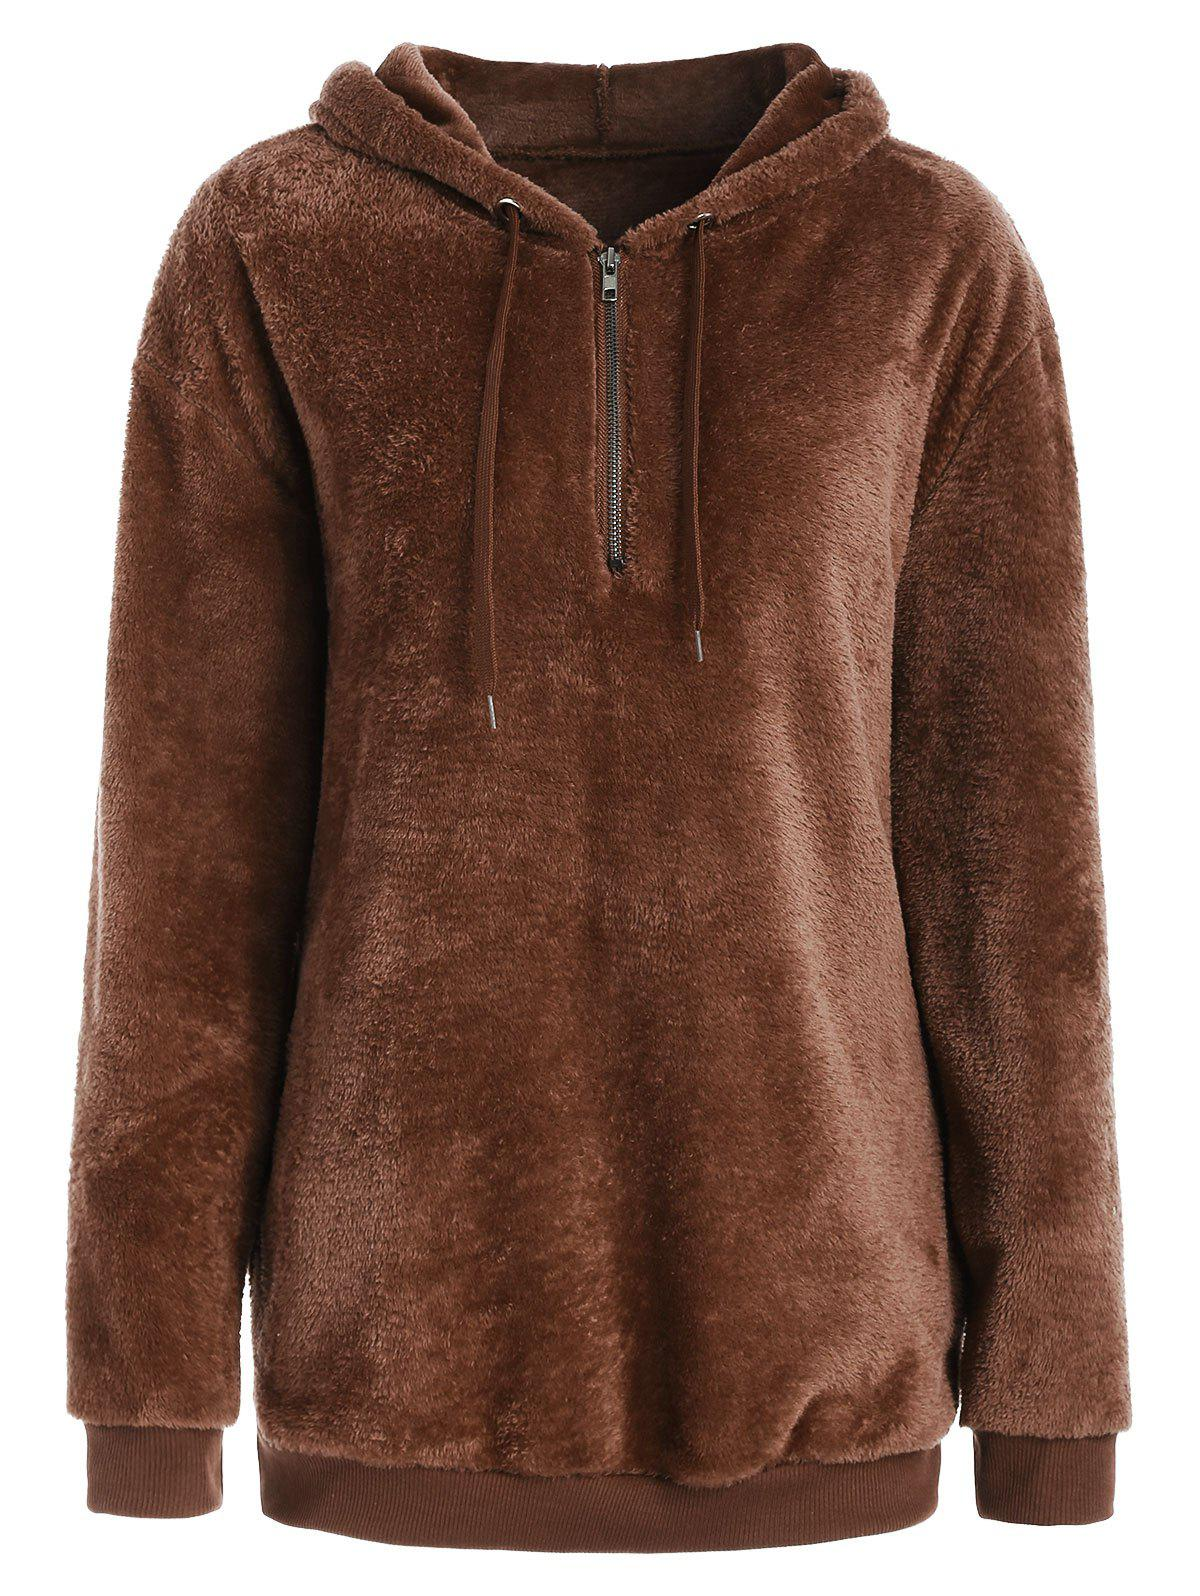 New Half Zipper Fluffy Hoodie with Pockets